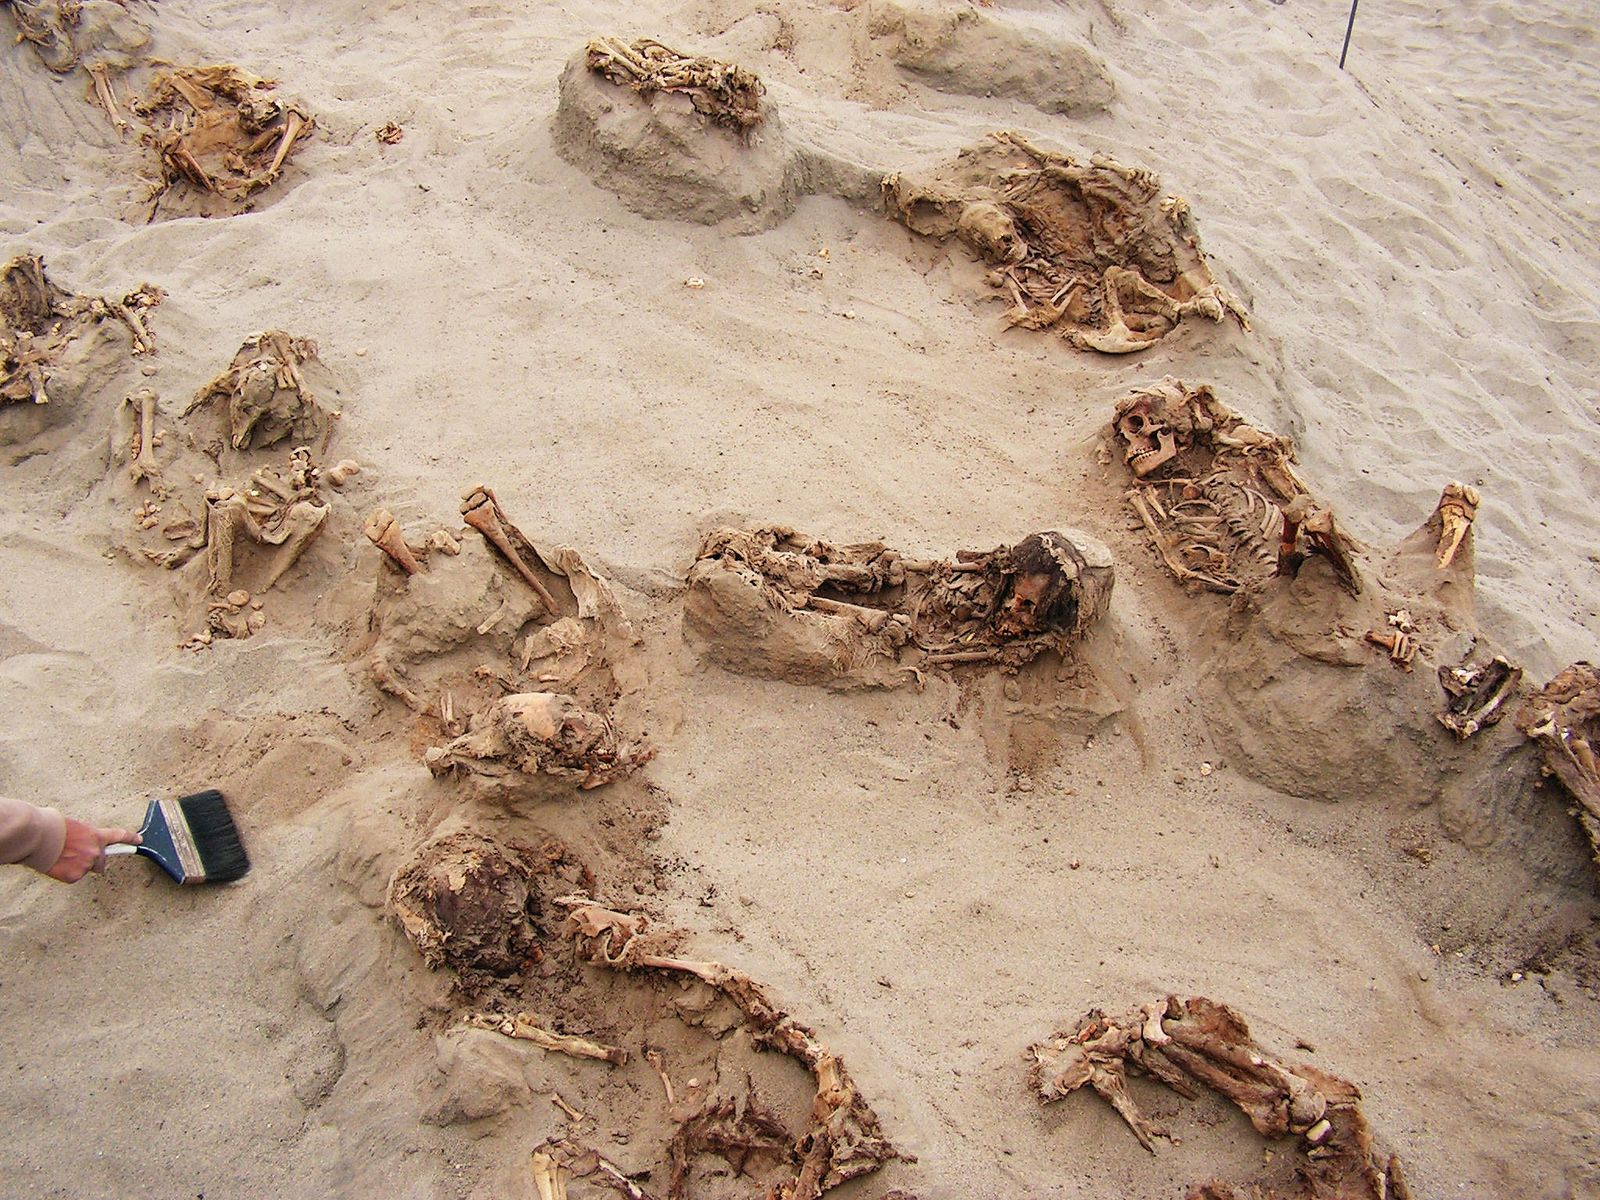 Preserved in dry sand for more than 500 years, more than a dozen children were revealed ...